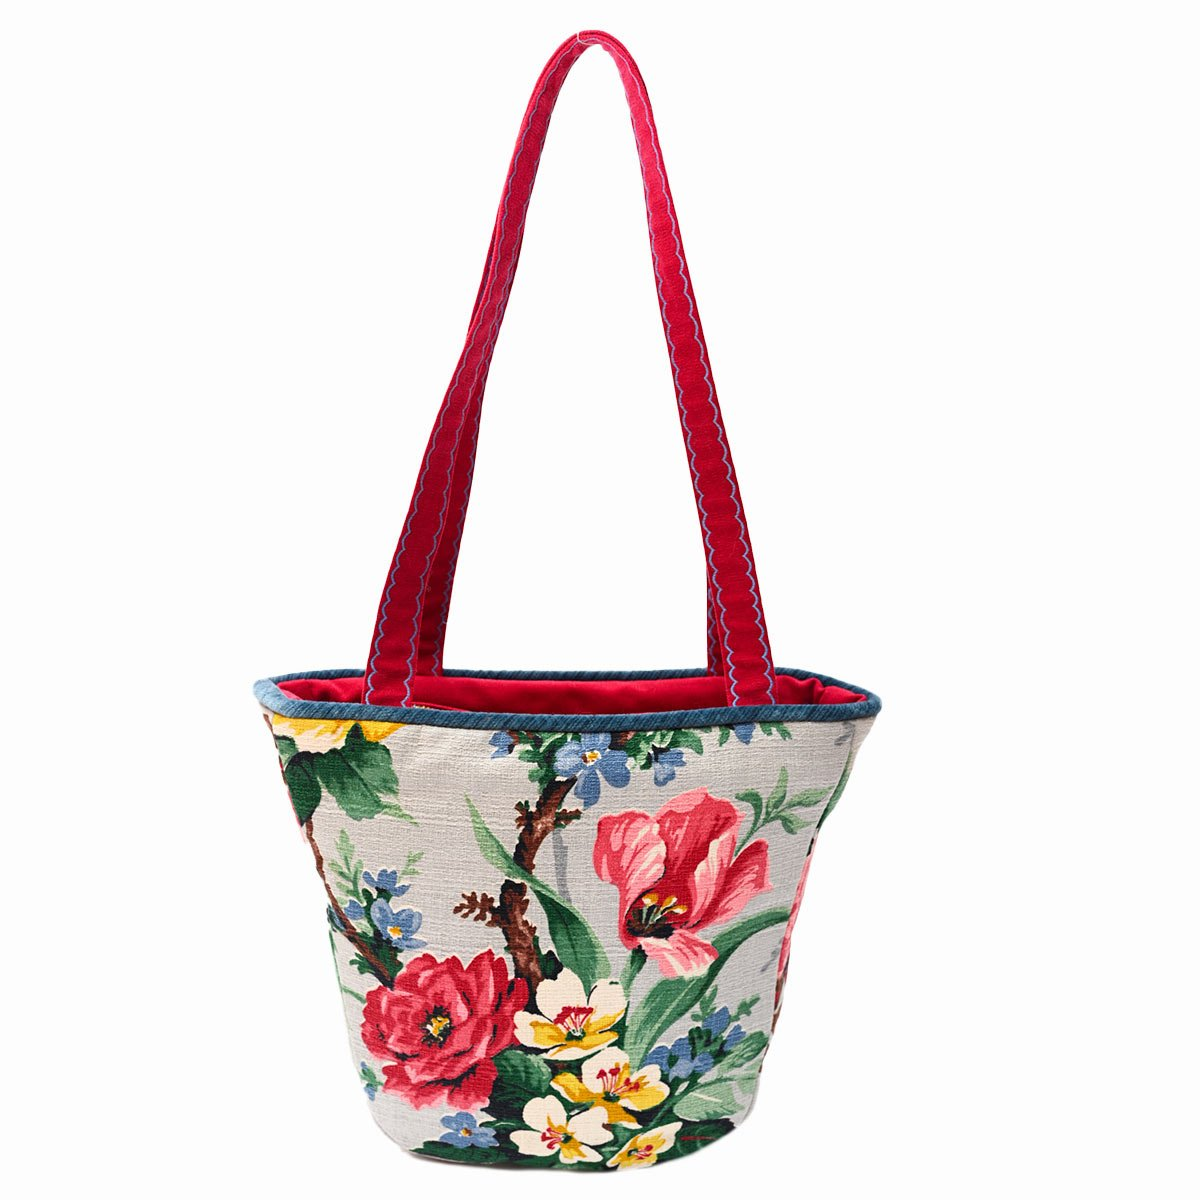 tiki bag floral motif on gray